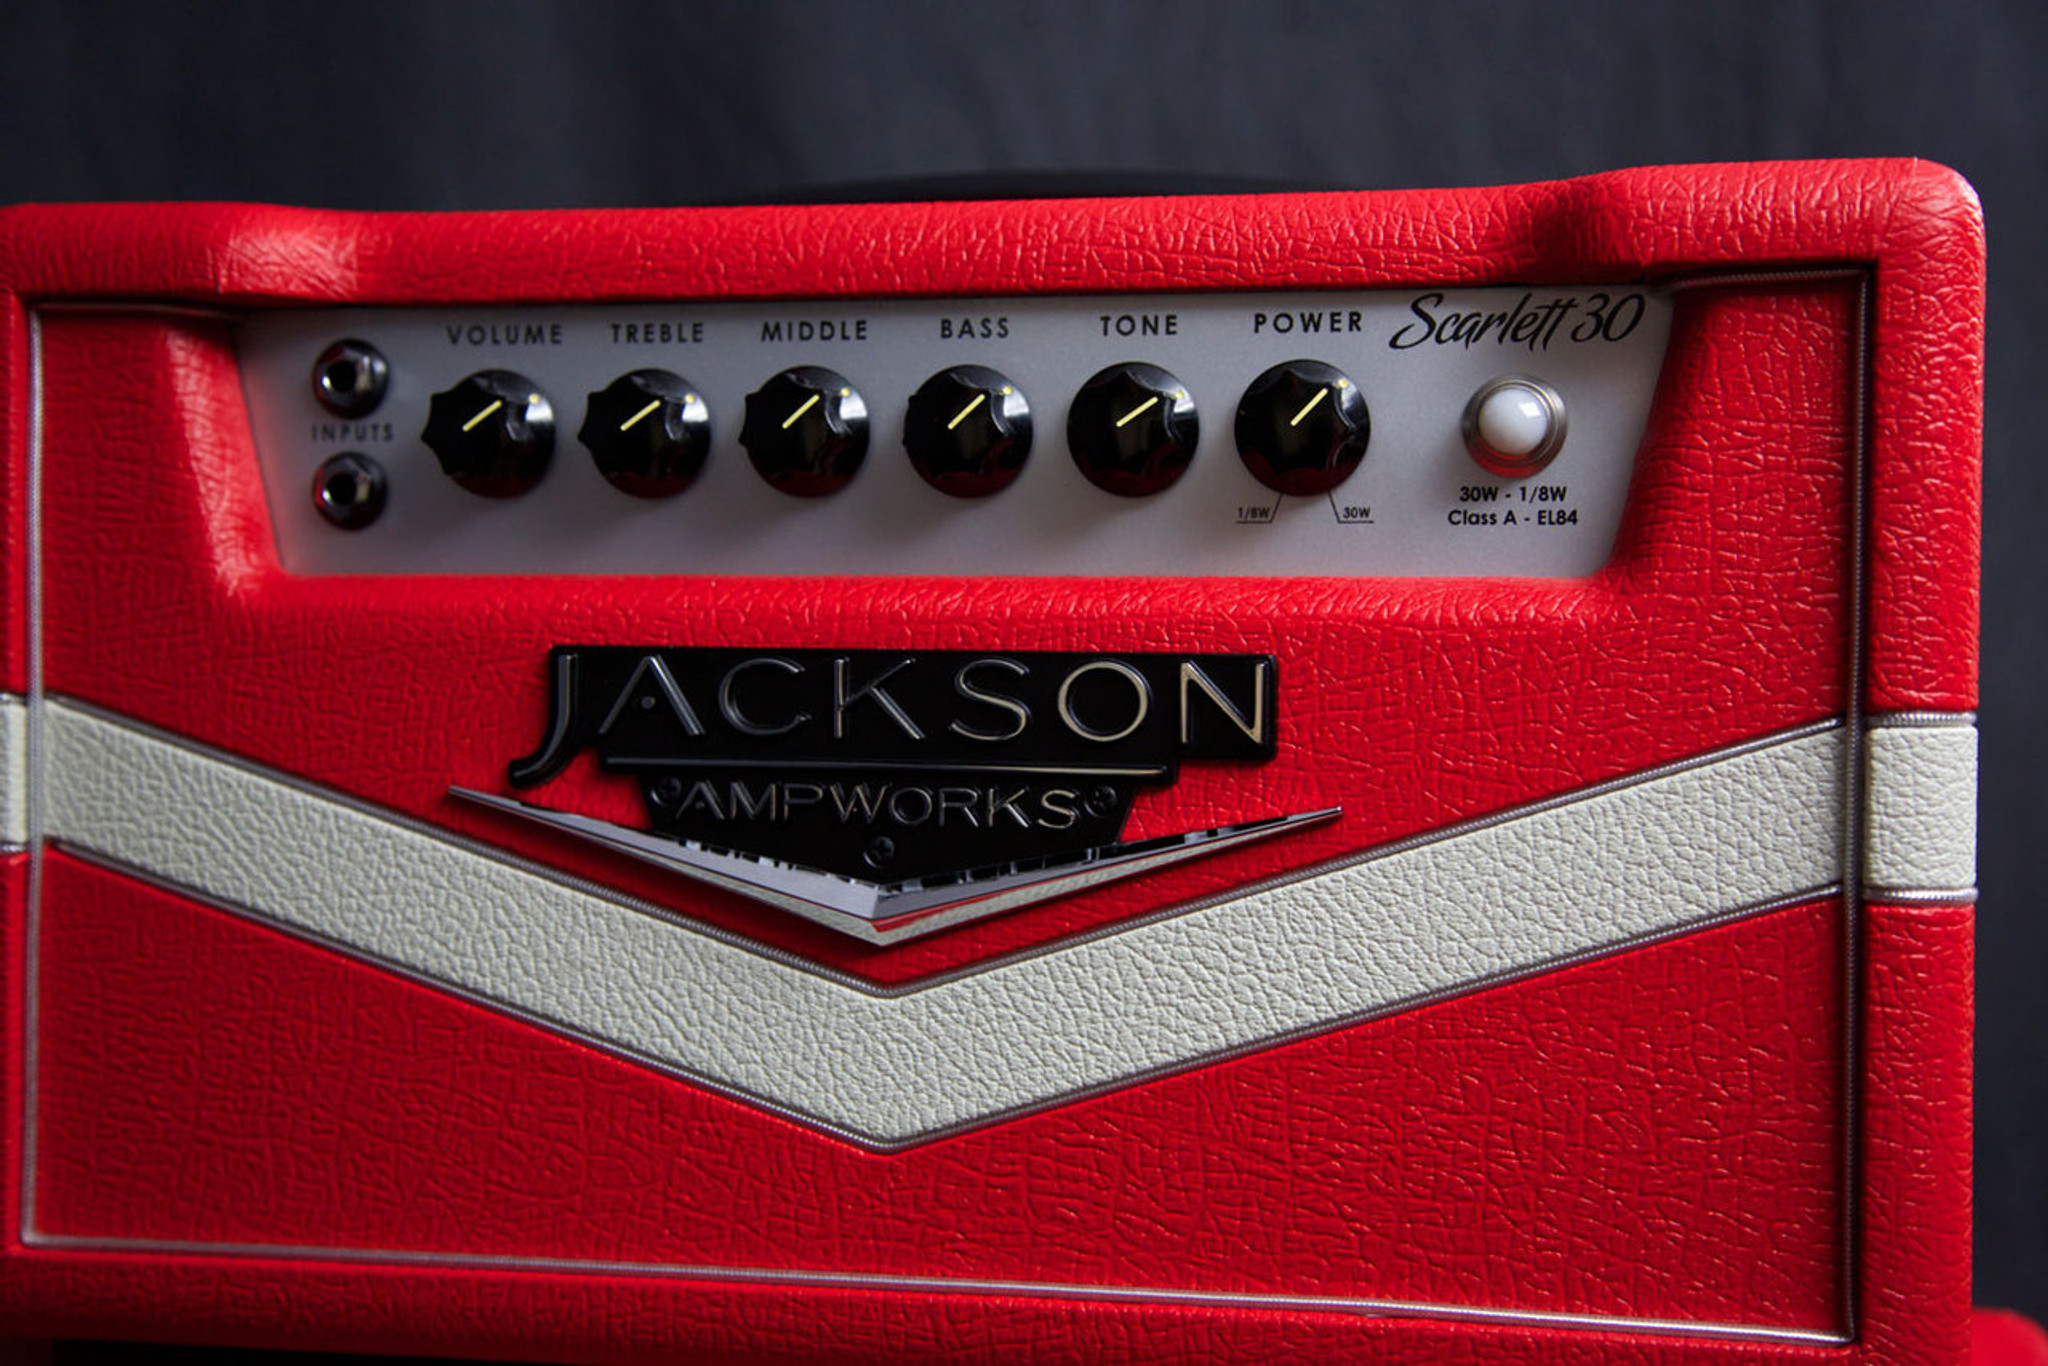 Jackson Ampworks SC-30 Head and 1X12 Cab